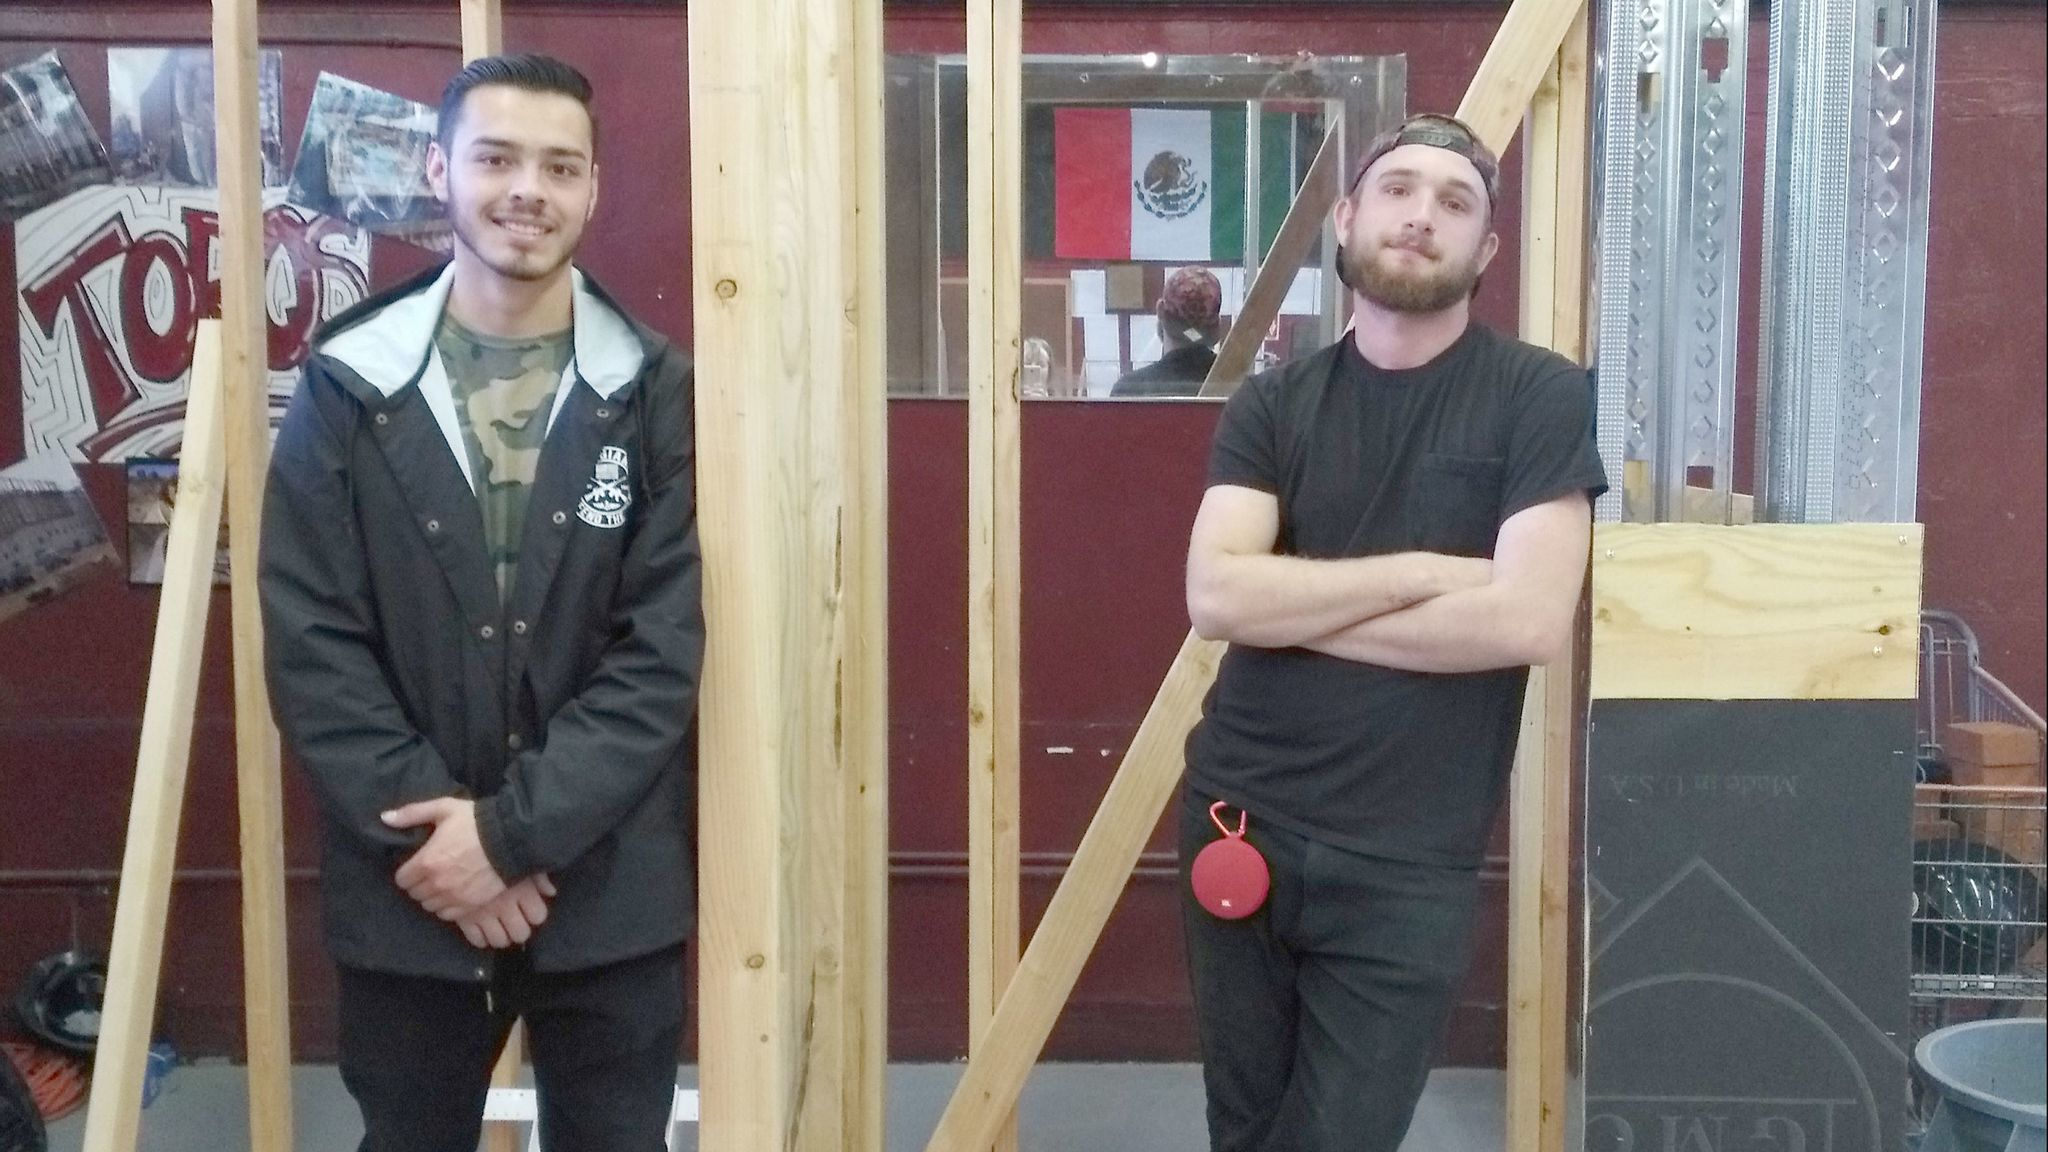 Montecito High School senior Luis Lozano and junior Dartanian Danks are part of a four-member team that won a first-place gold medal at the SkillsUSA regional competition.